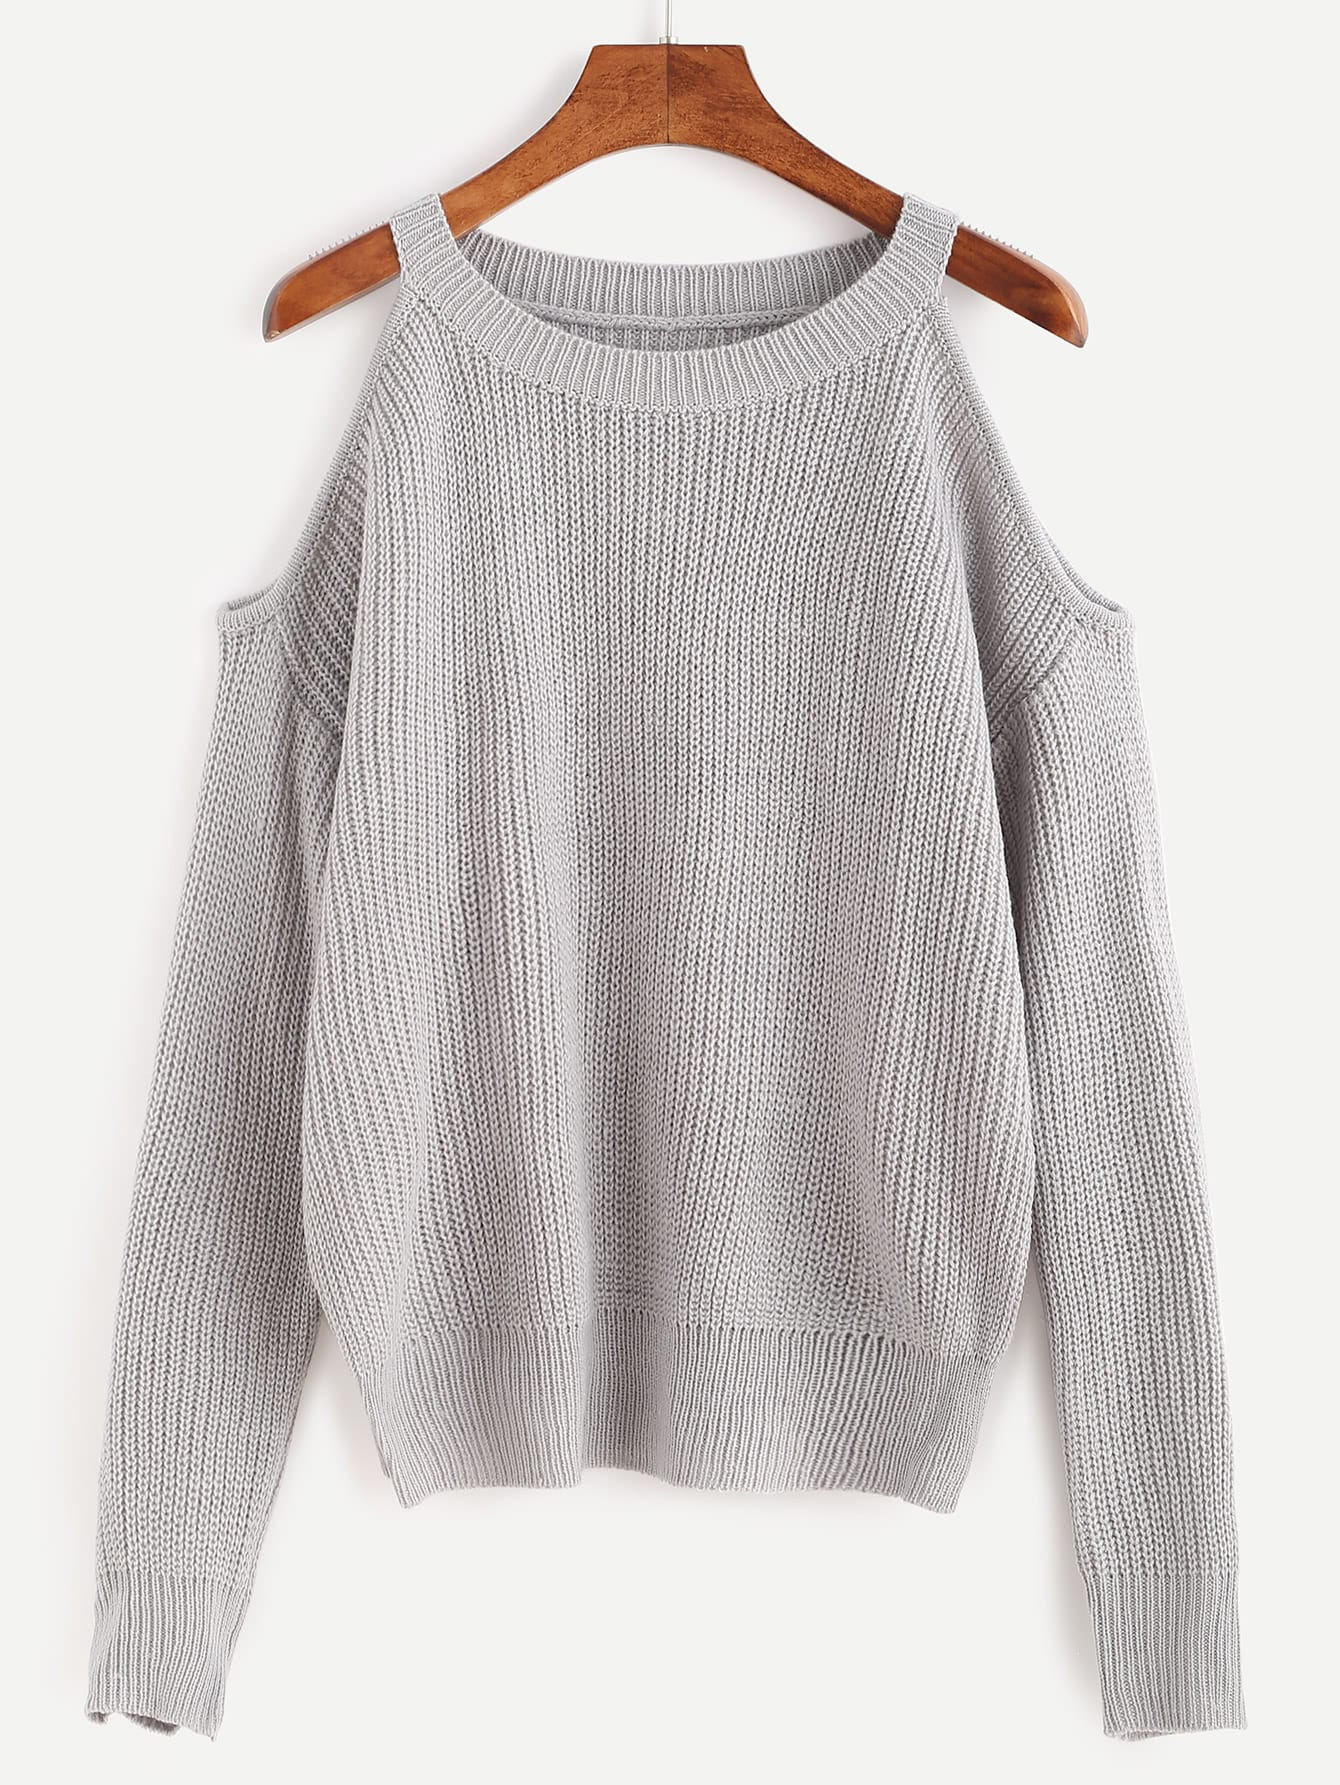 Open Knit Sweater Pattern : Open Shoulder Knit Sweater -SheIn(Sheinside)